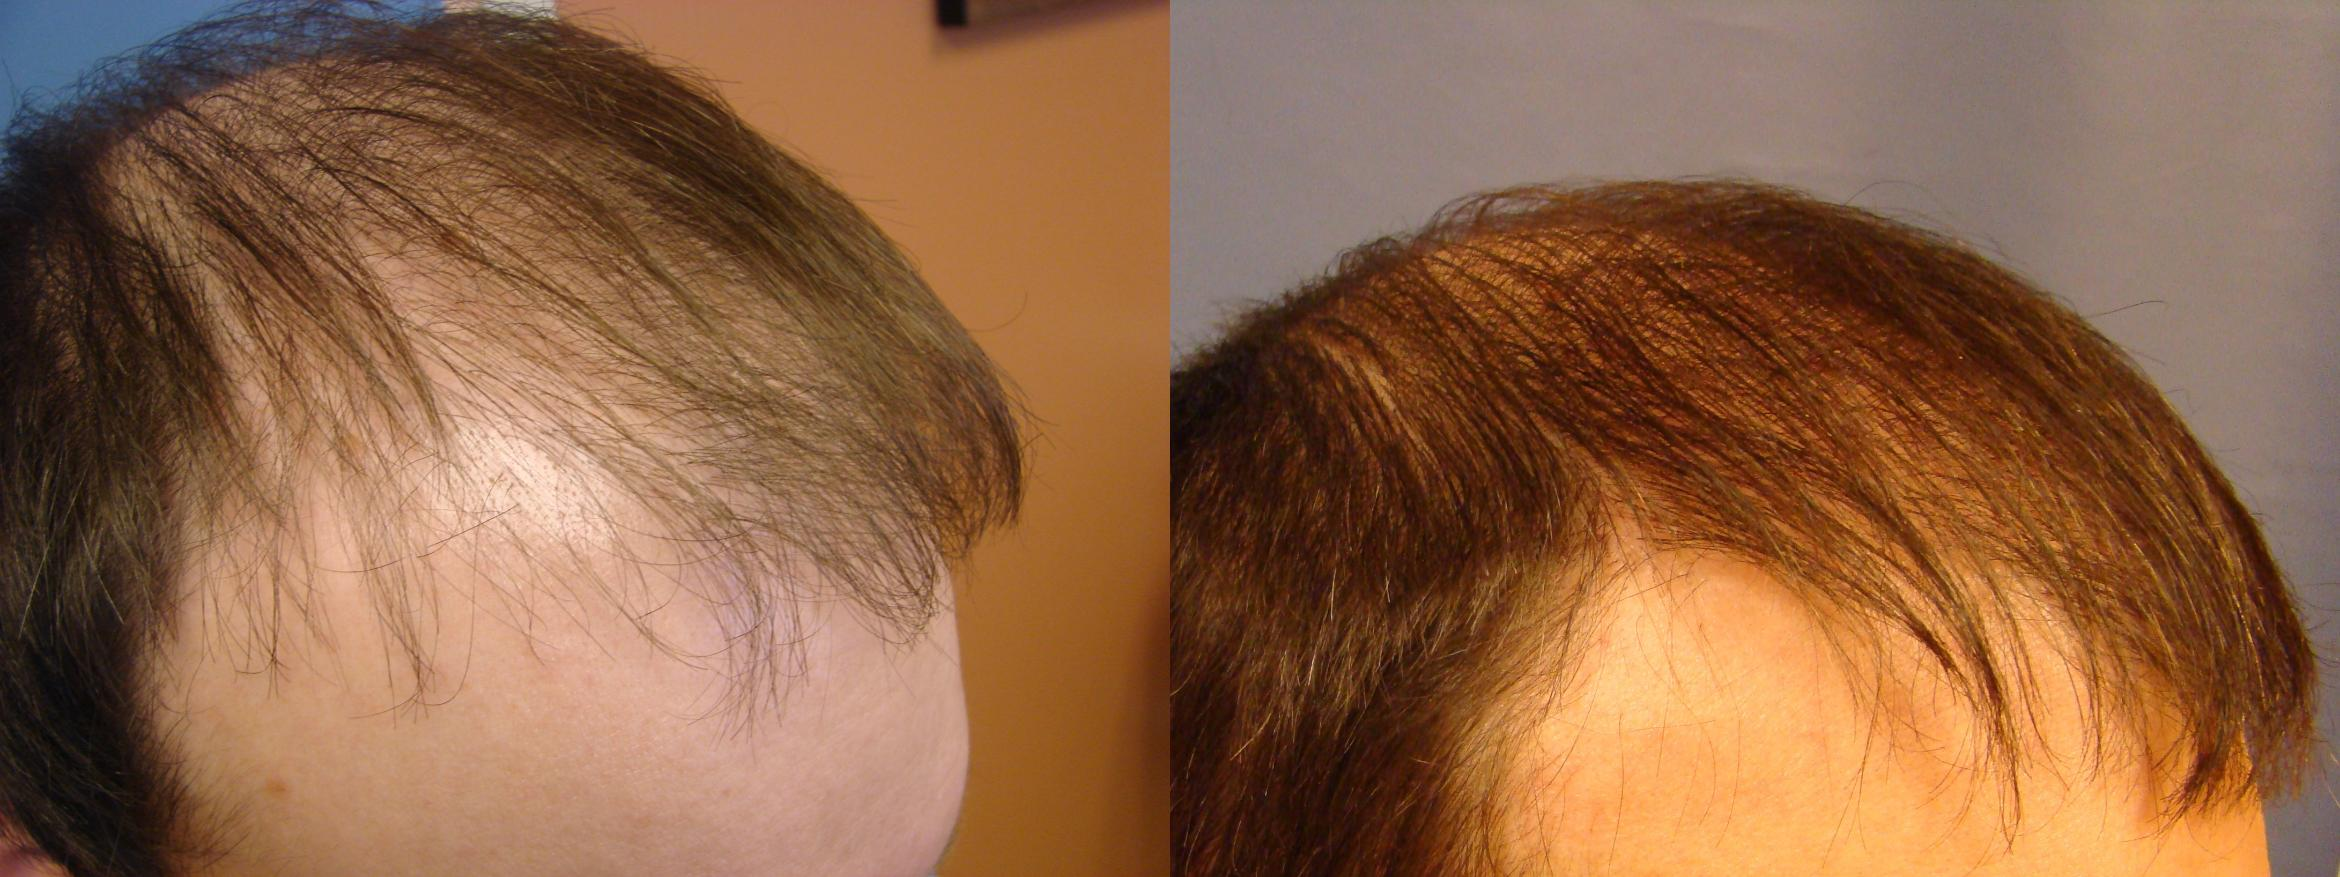 Neograft Hair Replacement Case 86 Before & After View #2 | Birmingham, AL | Dr. Michael S. Beckenstein